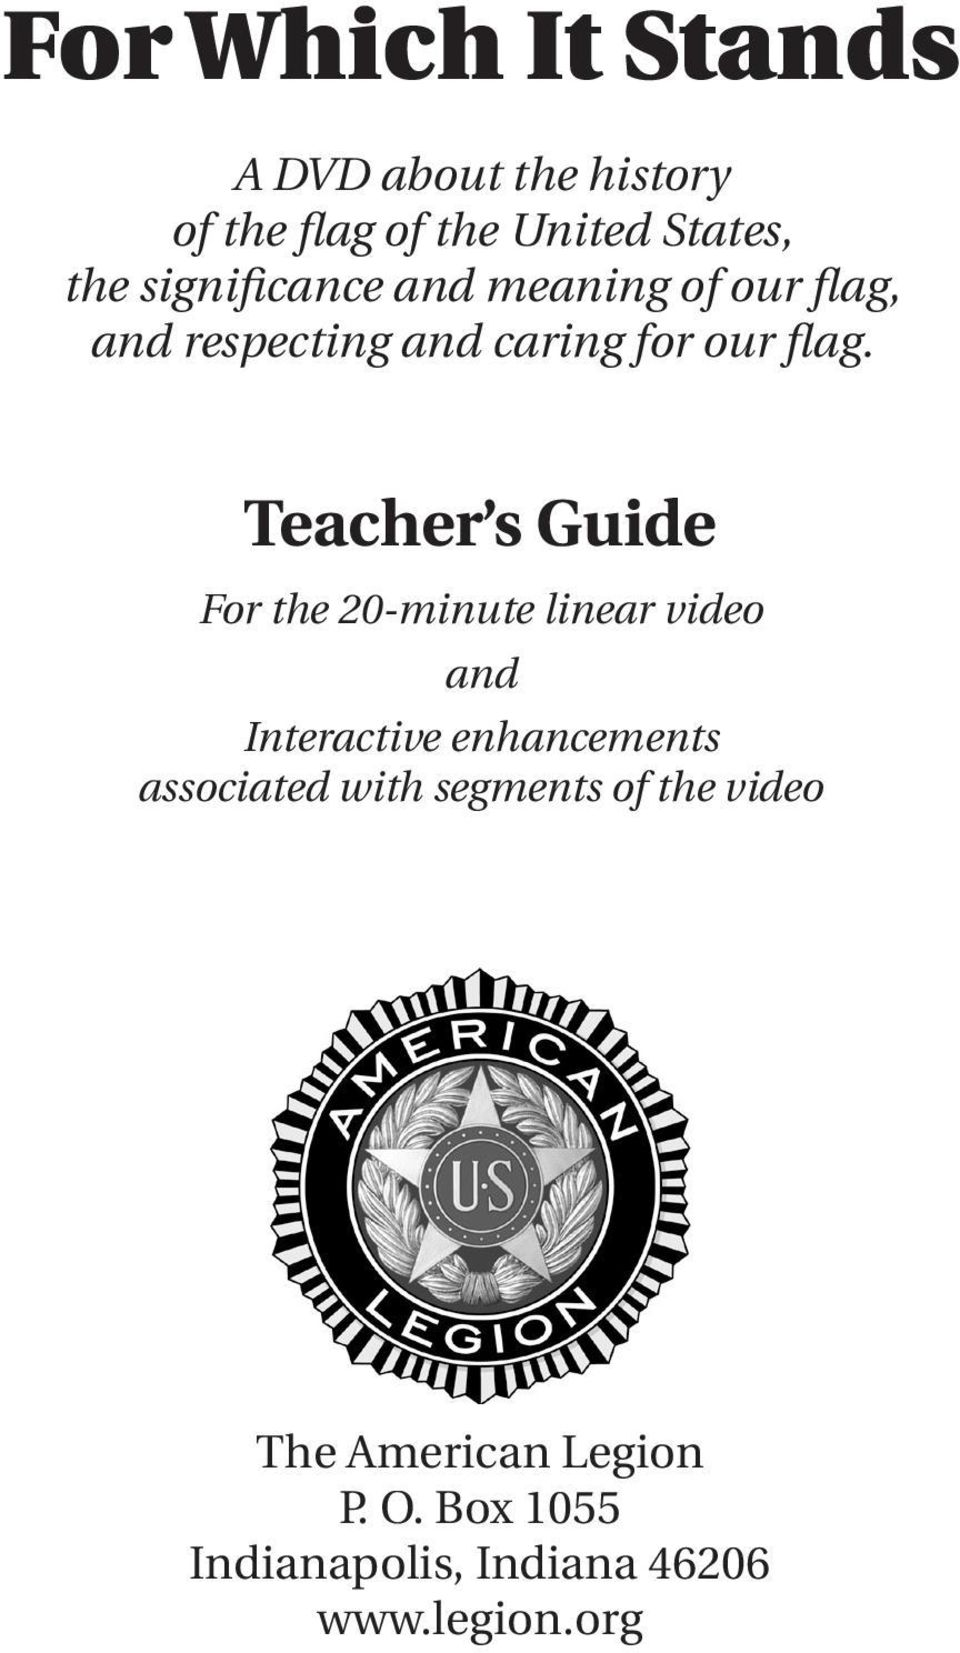 Teacher s Guide For the 20-minute linear video and Interactive enhancements associated